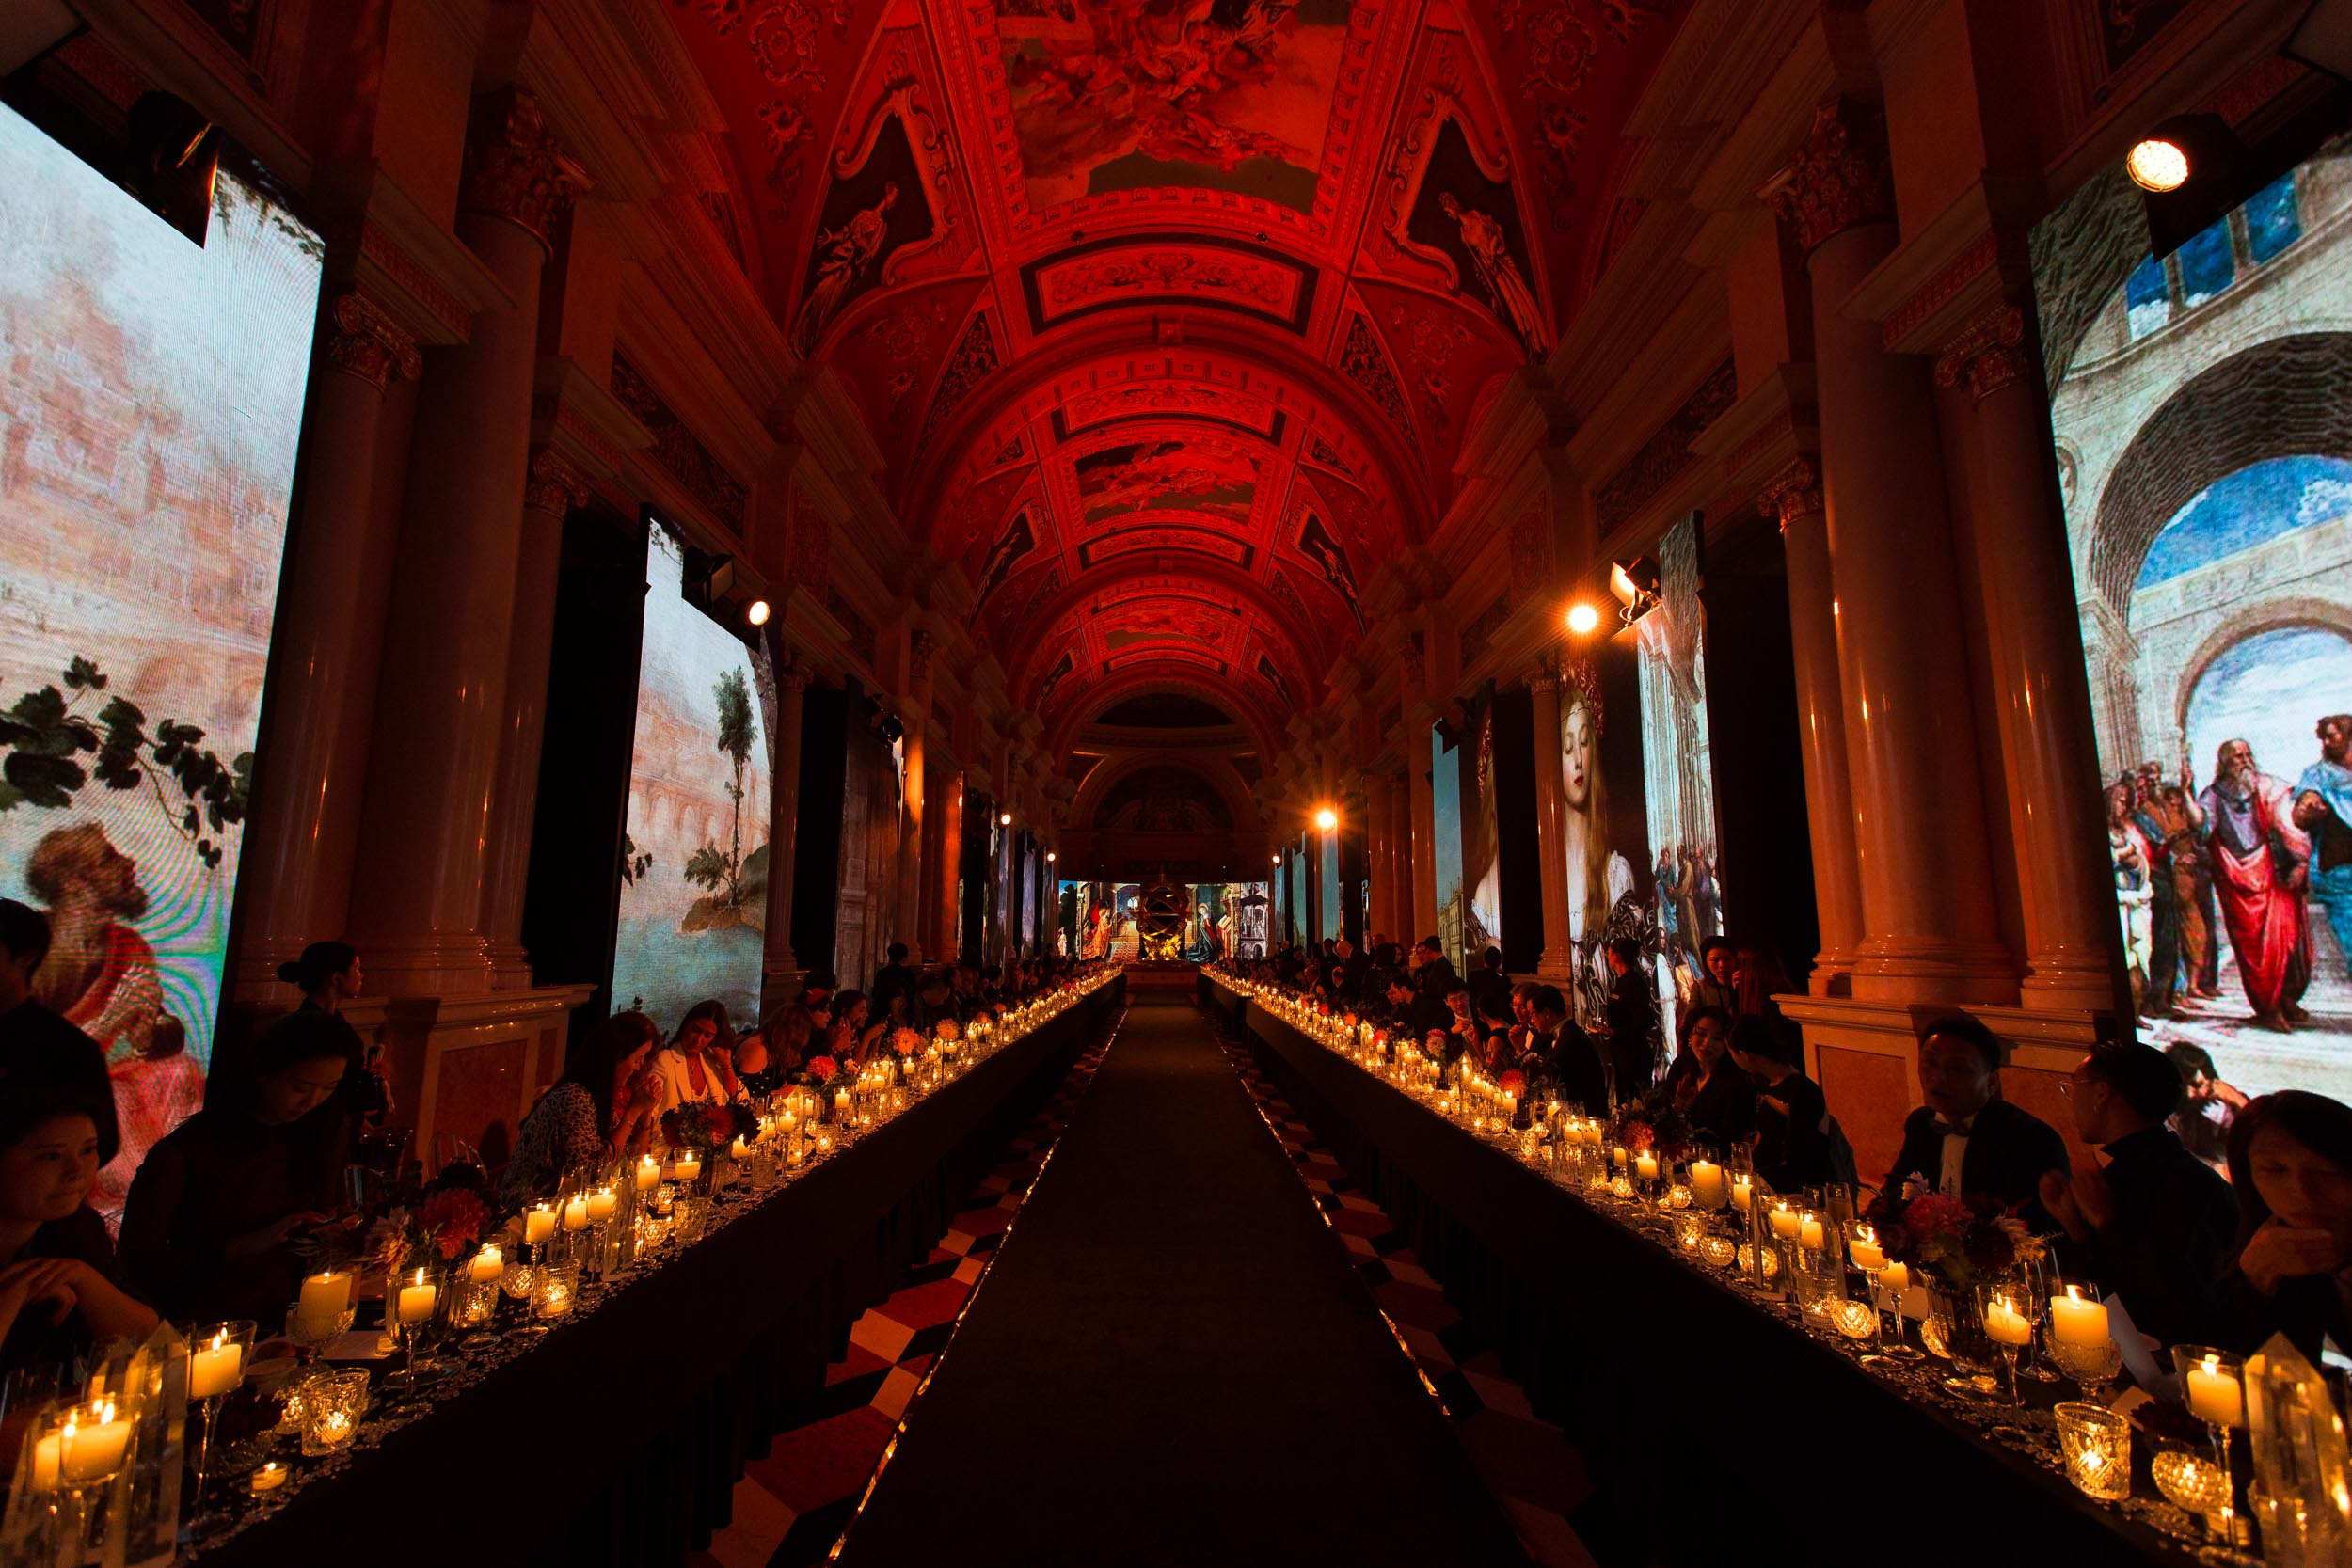 The lobby of The Venetian casino in Macau was transformed into a runway with guests dining alongside it.